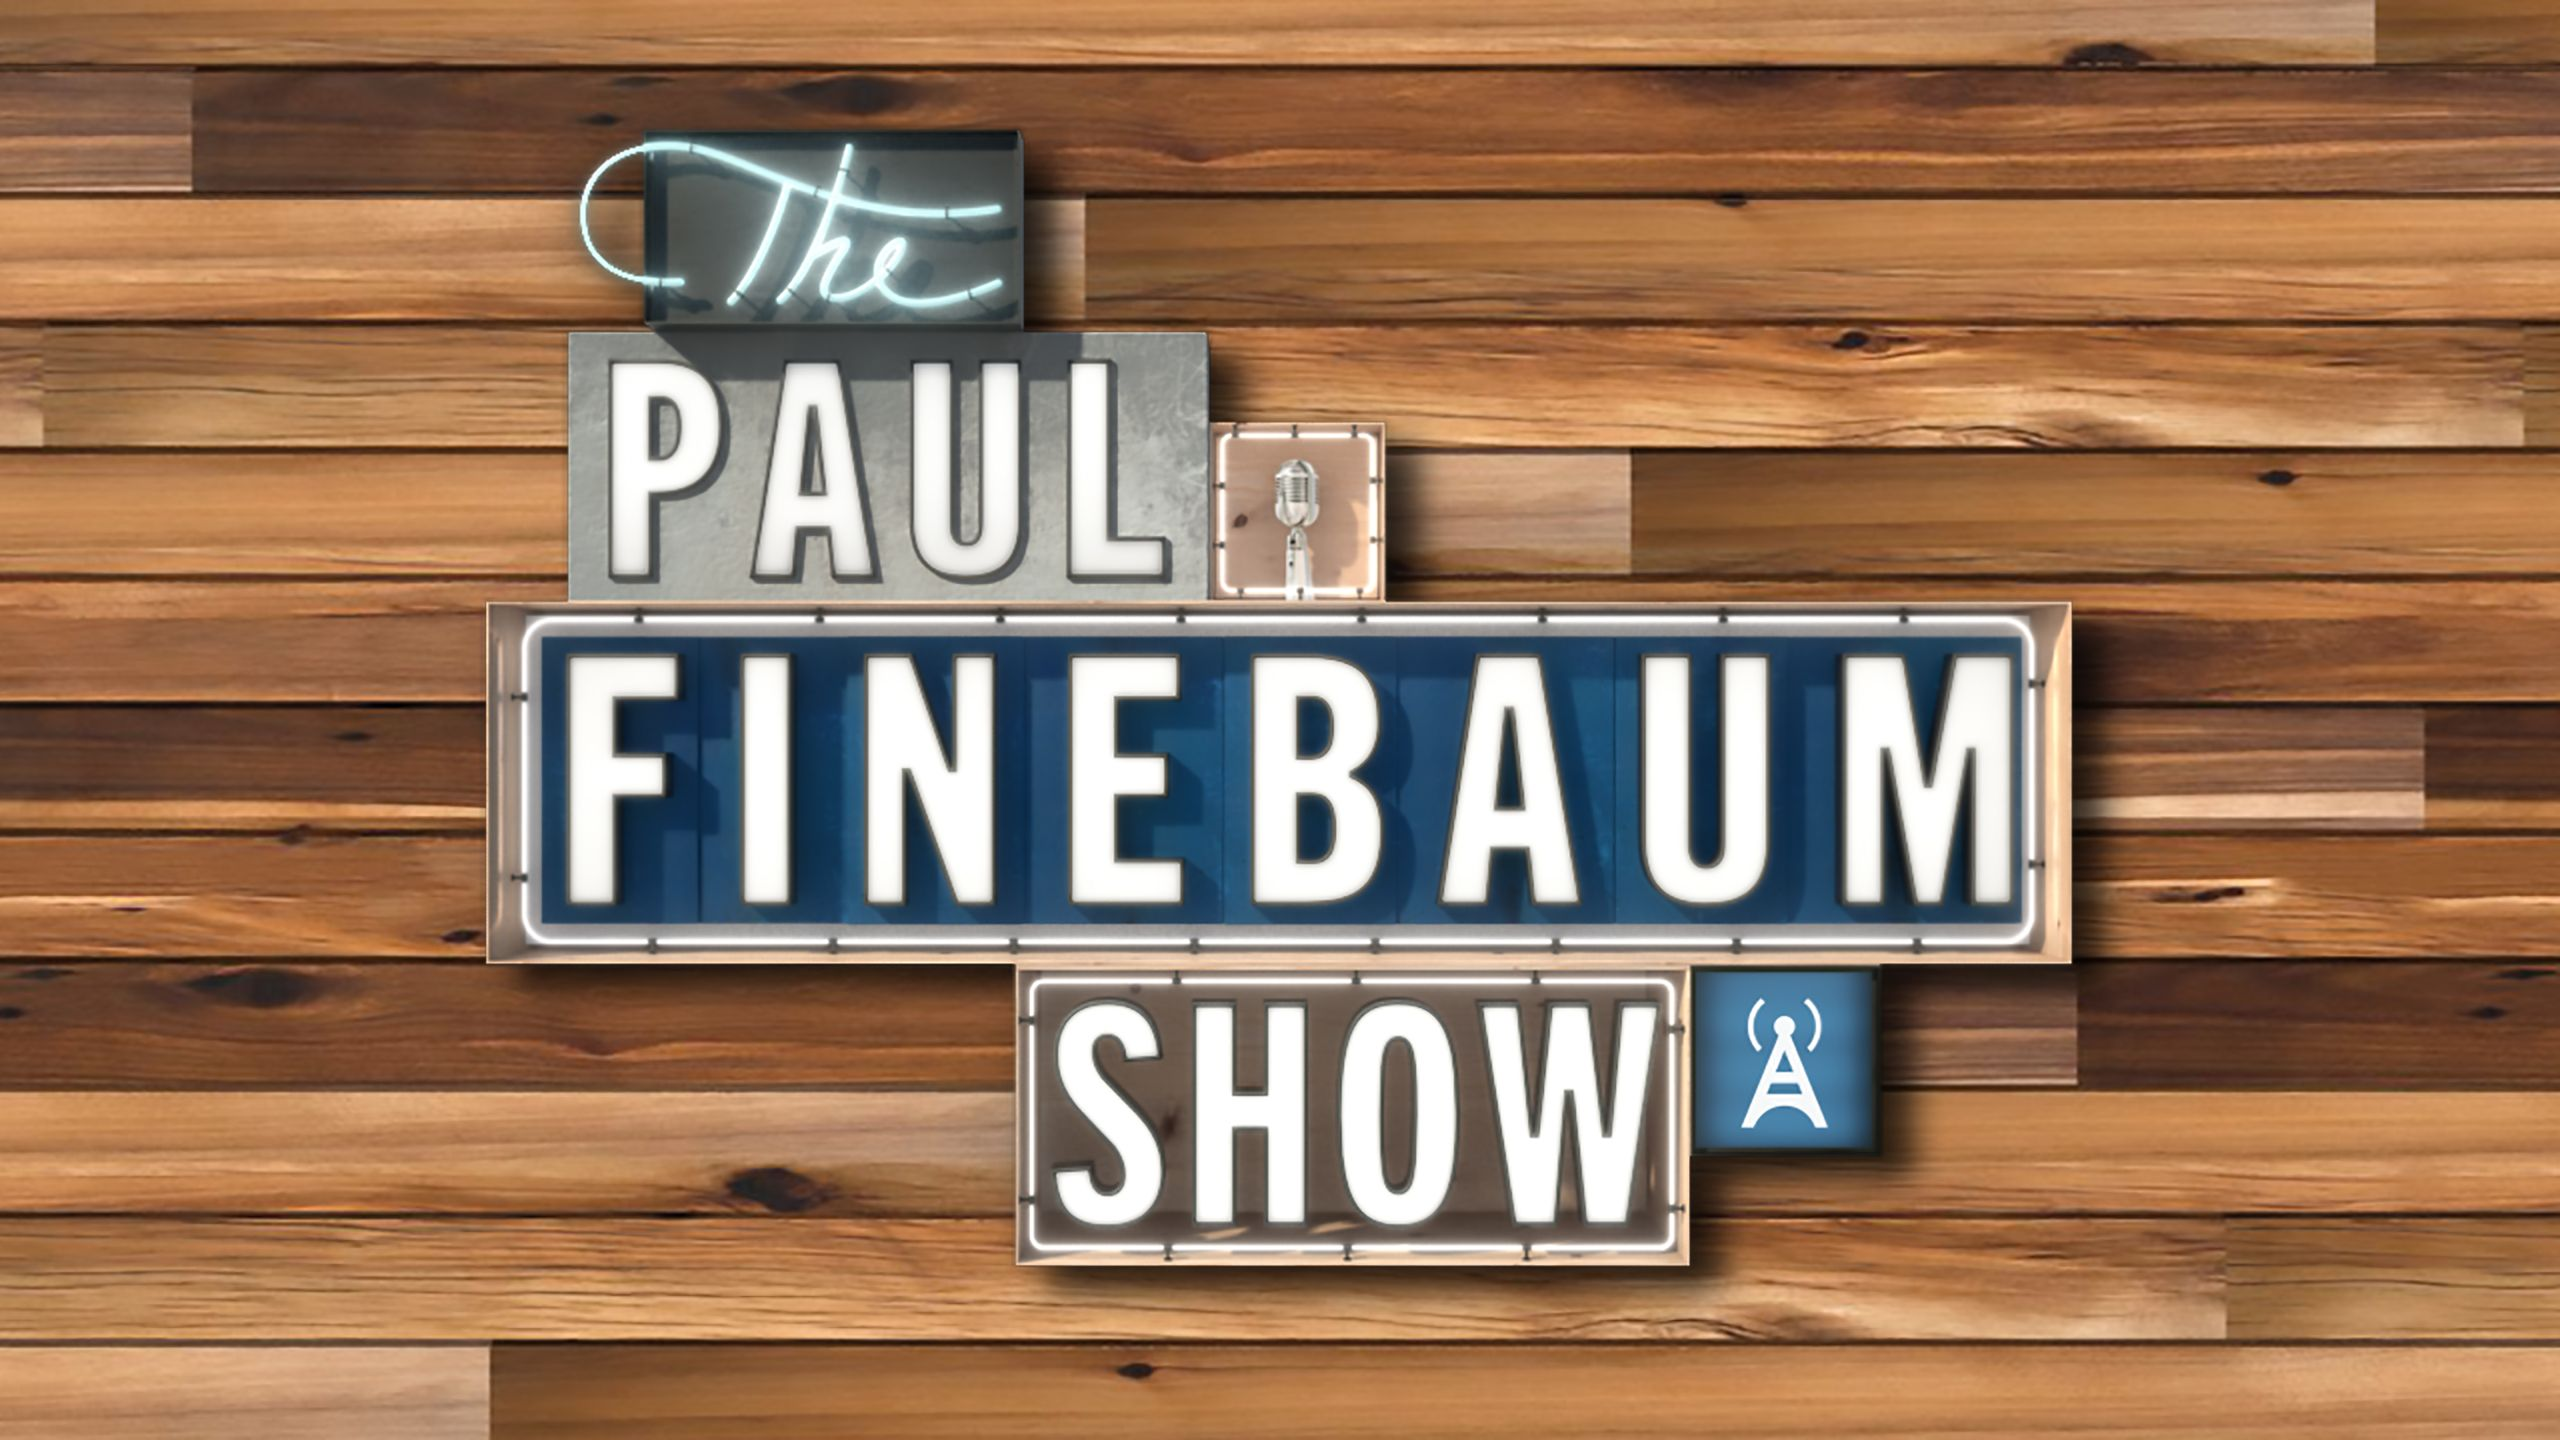 Tue, 11/21 - The Paul Finebaum Show